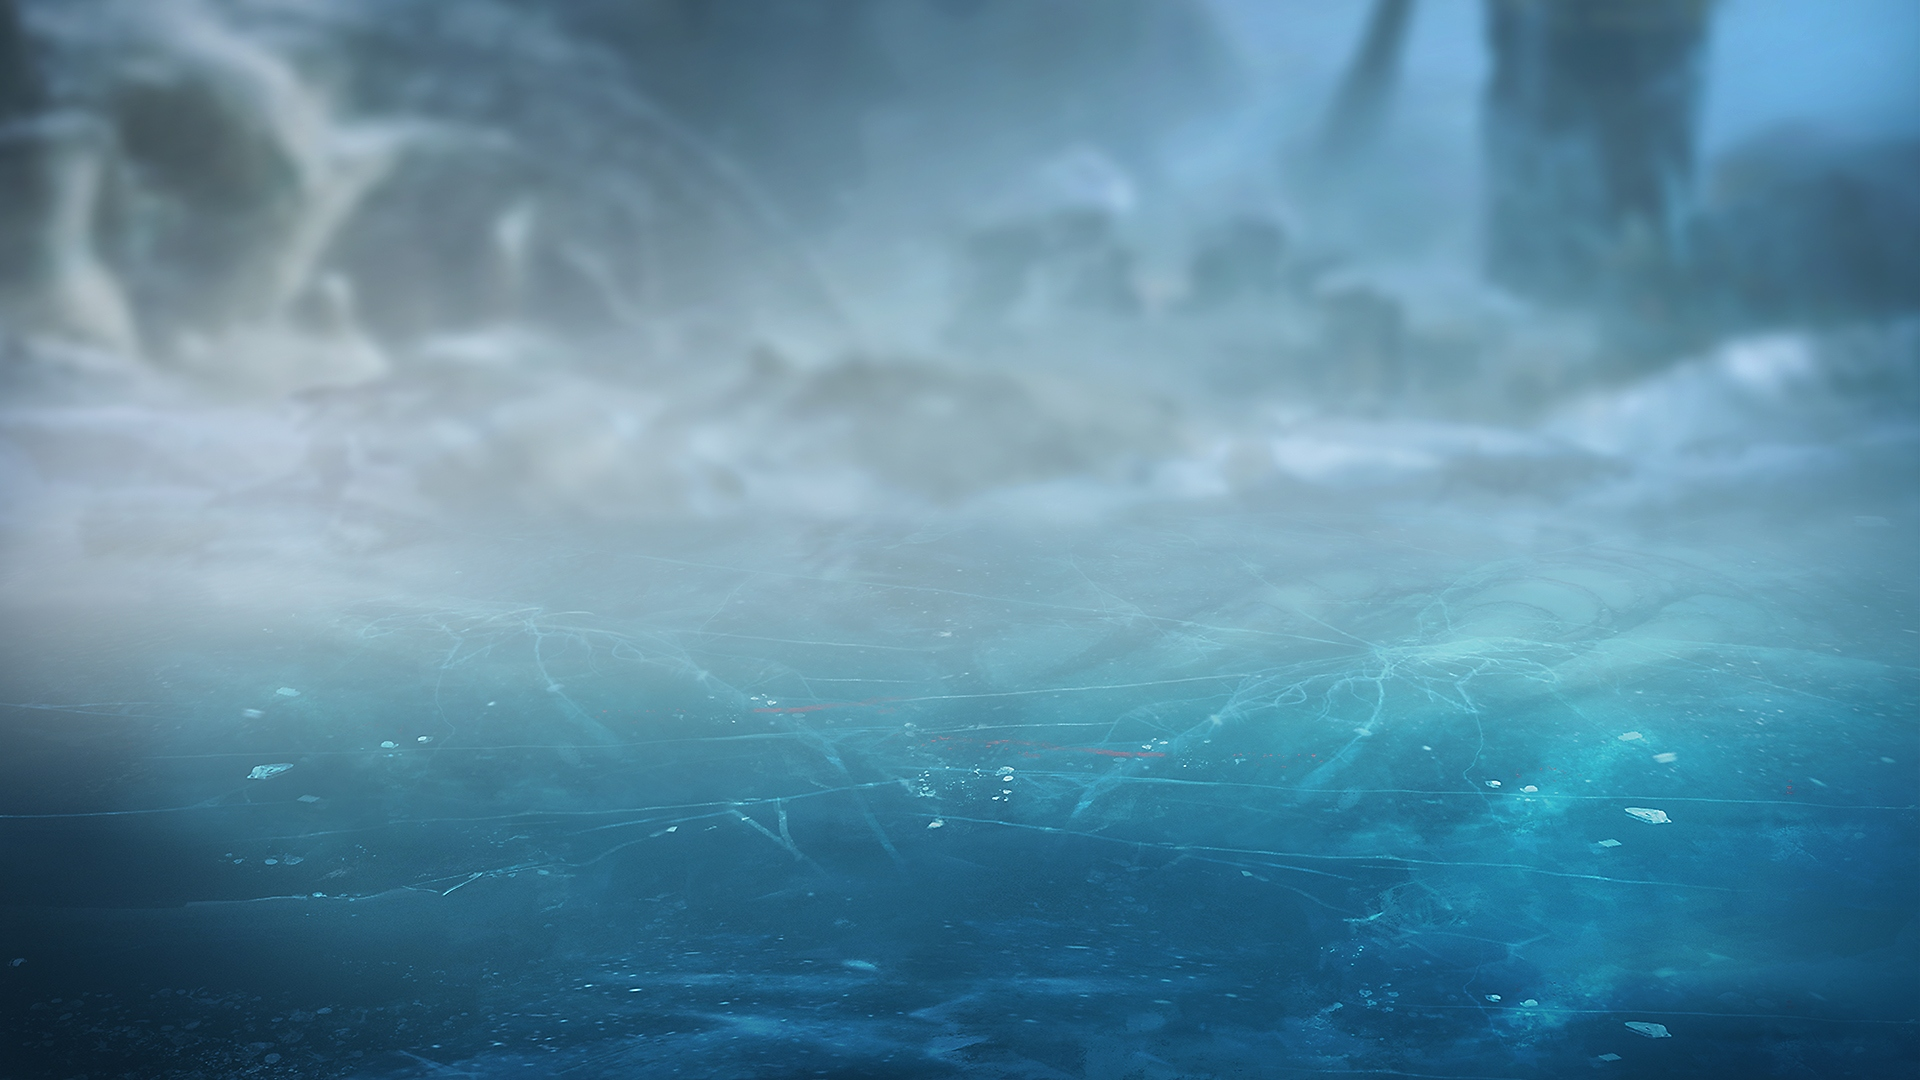 god of war background